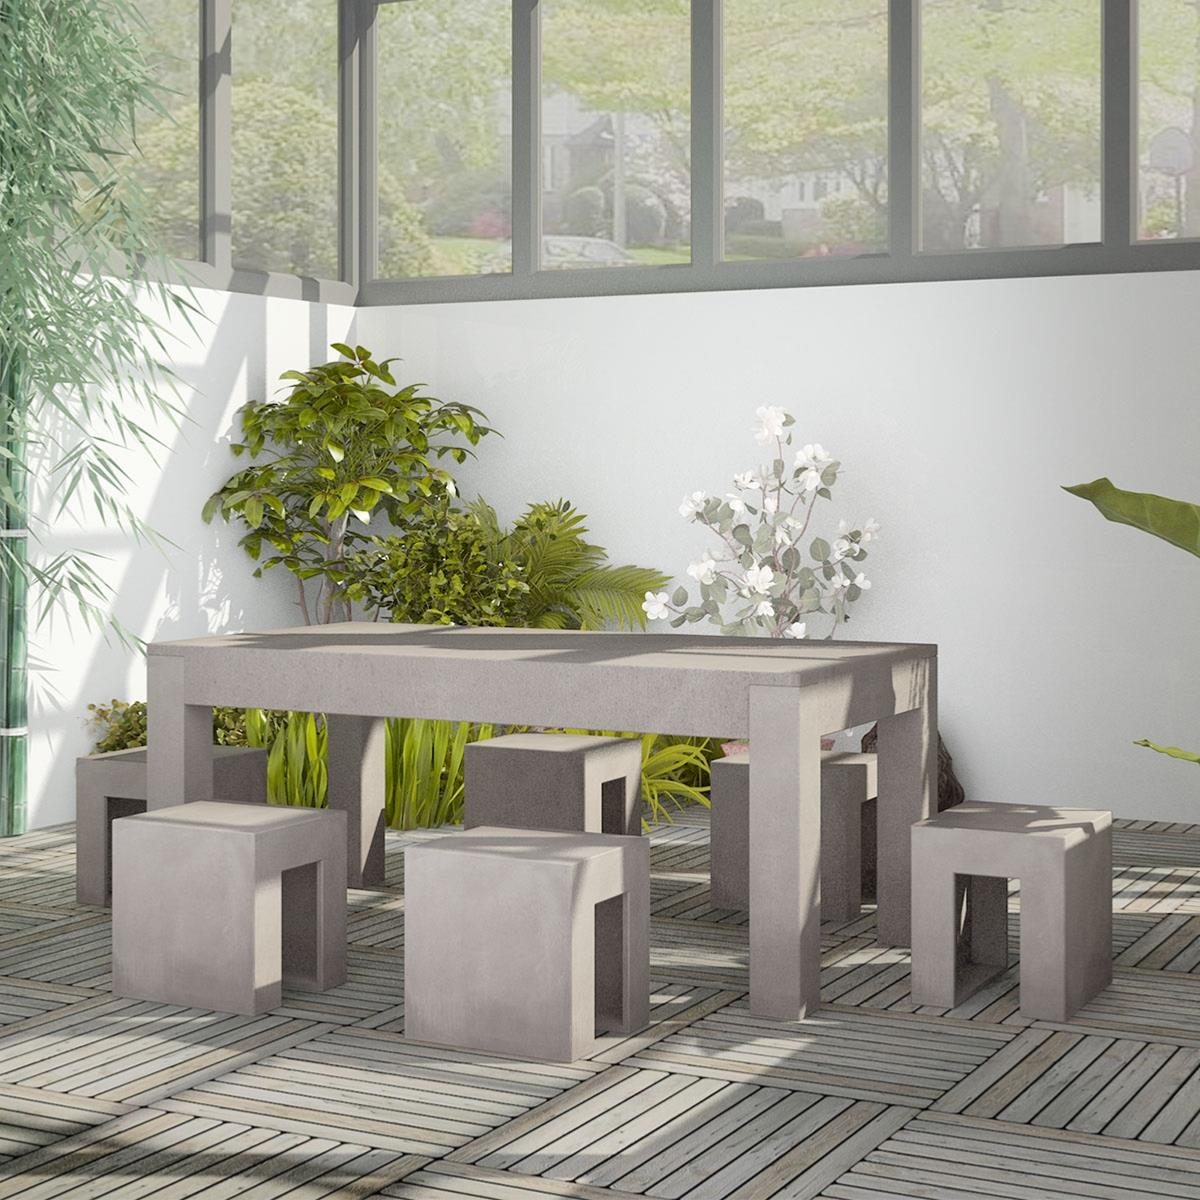 salon de jardin en b ton complet table avec 6 tabourets. Black Bedroom Furniture Sets. Home Design Ideas